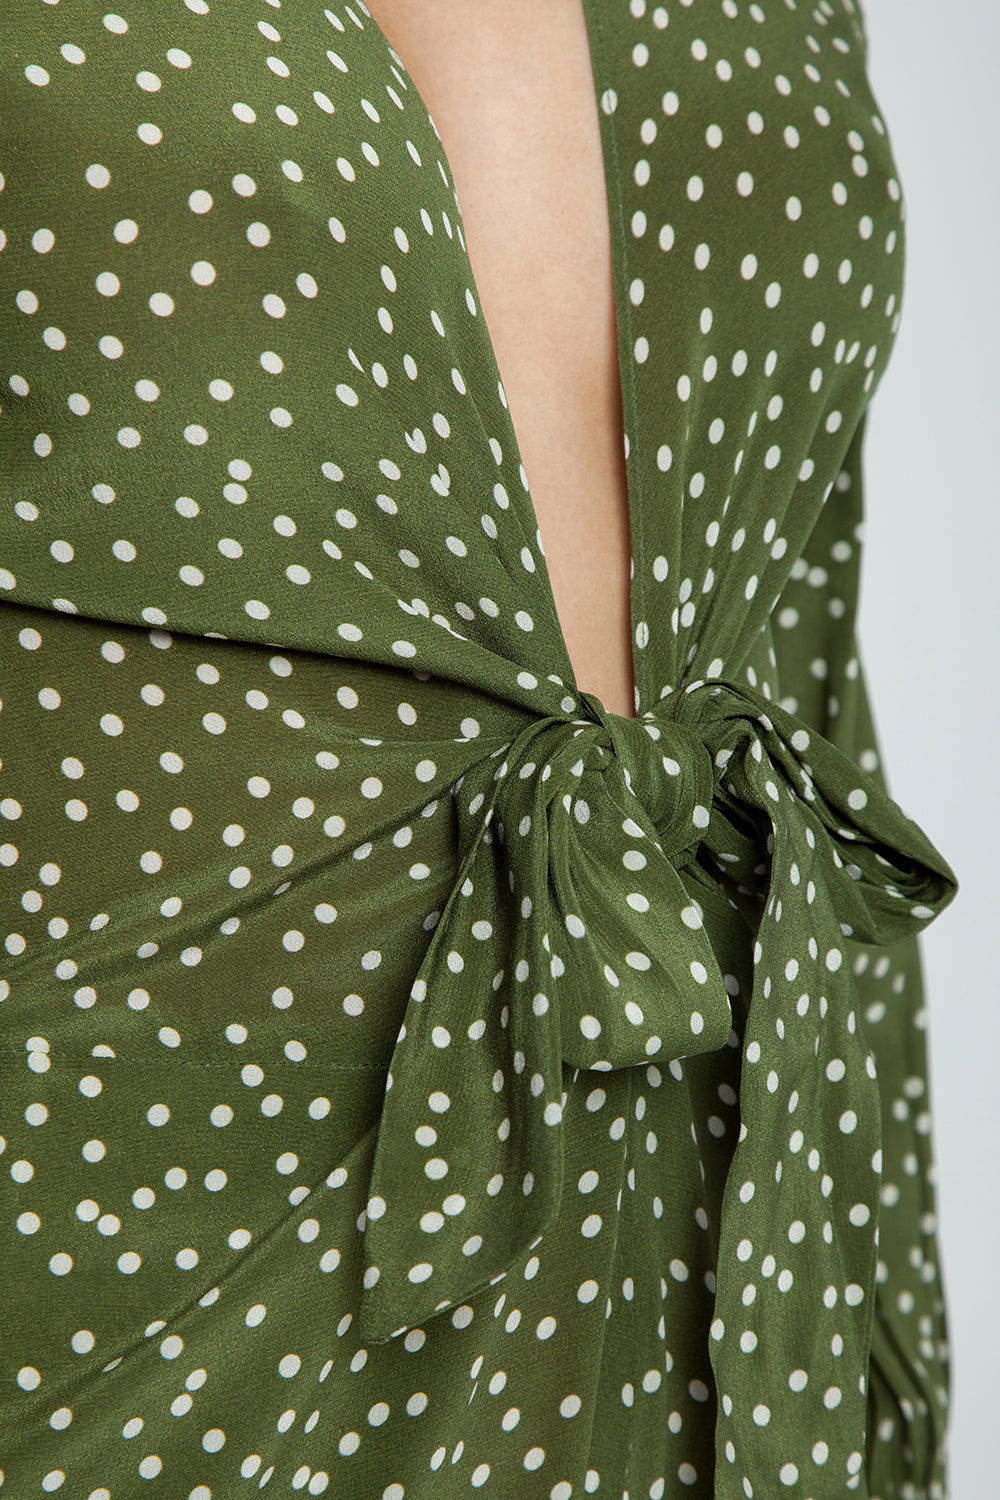 ADRIANA DEGREAS Silk Crepe De Chine Jumpsuit - Mille Punti Green Dot Print Jumpsuit | Mille Punti Green Dot Print| Adriana Degreas Silk Crepe De Chine Jumpsuit - Mille Punti Green Dot Print. Features:  Plunging v neckline Ties at front Long sleeves Main: 100% Silk.   Detail View